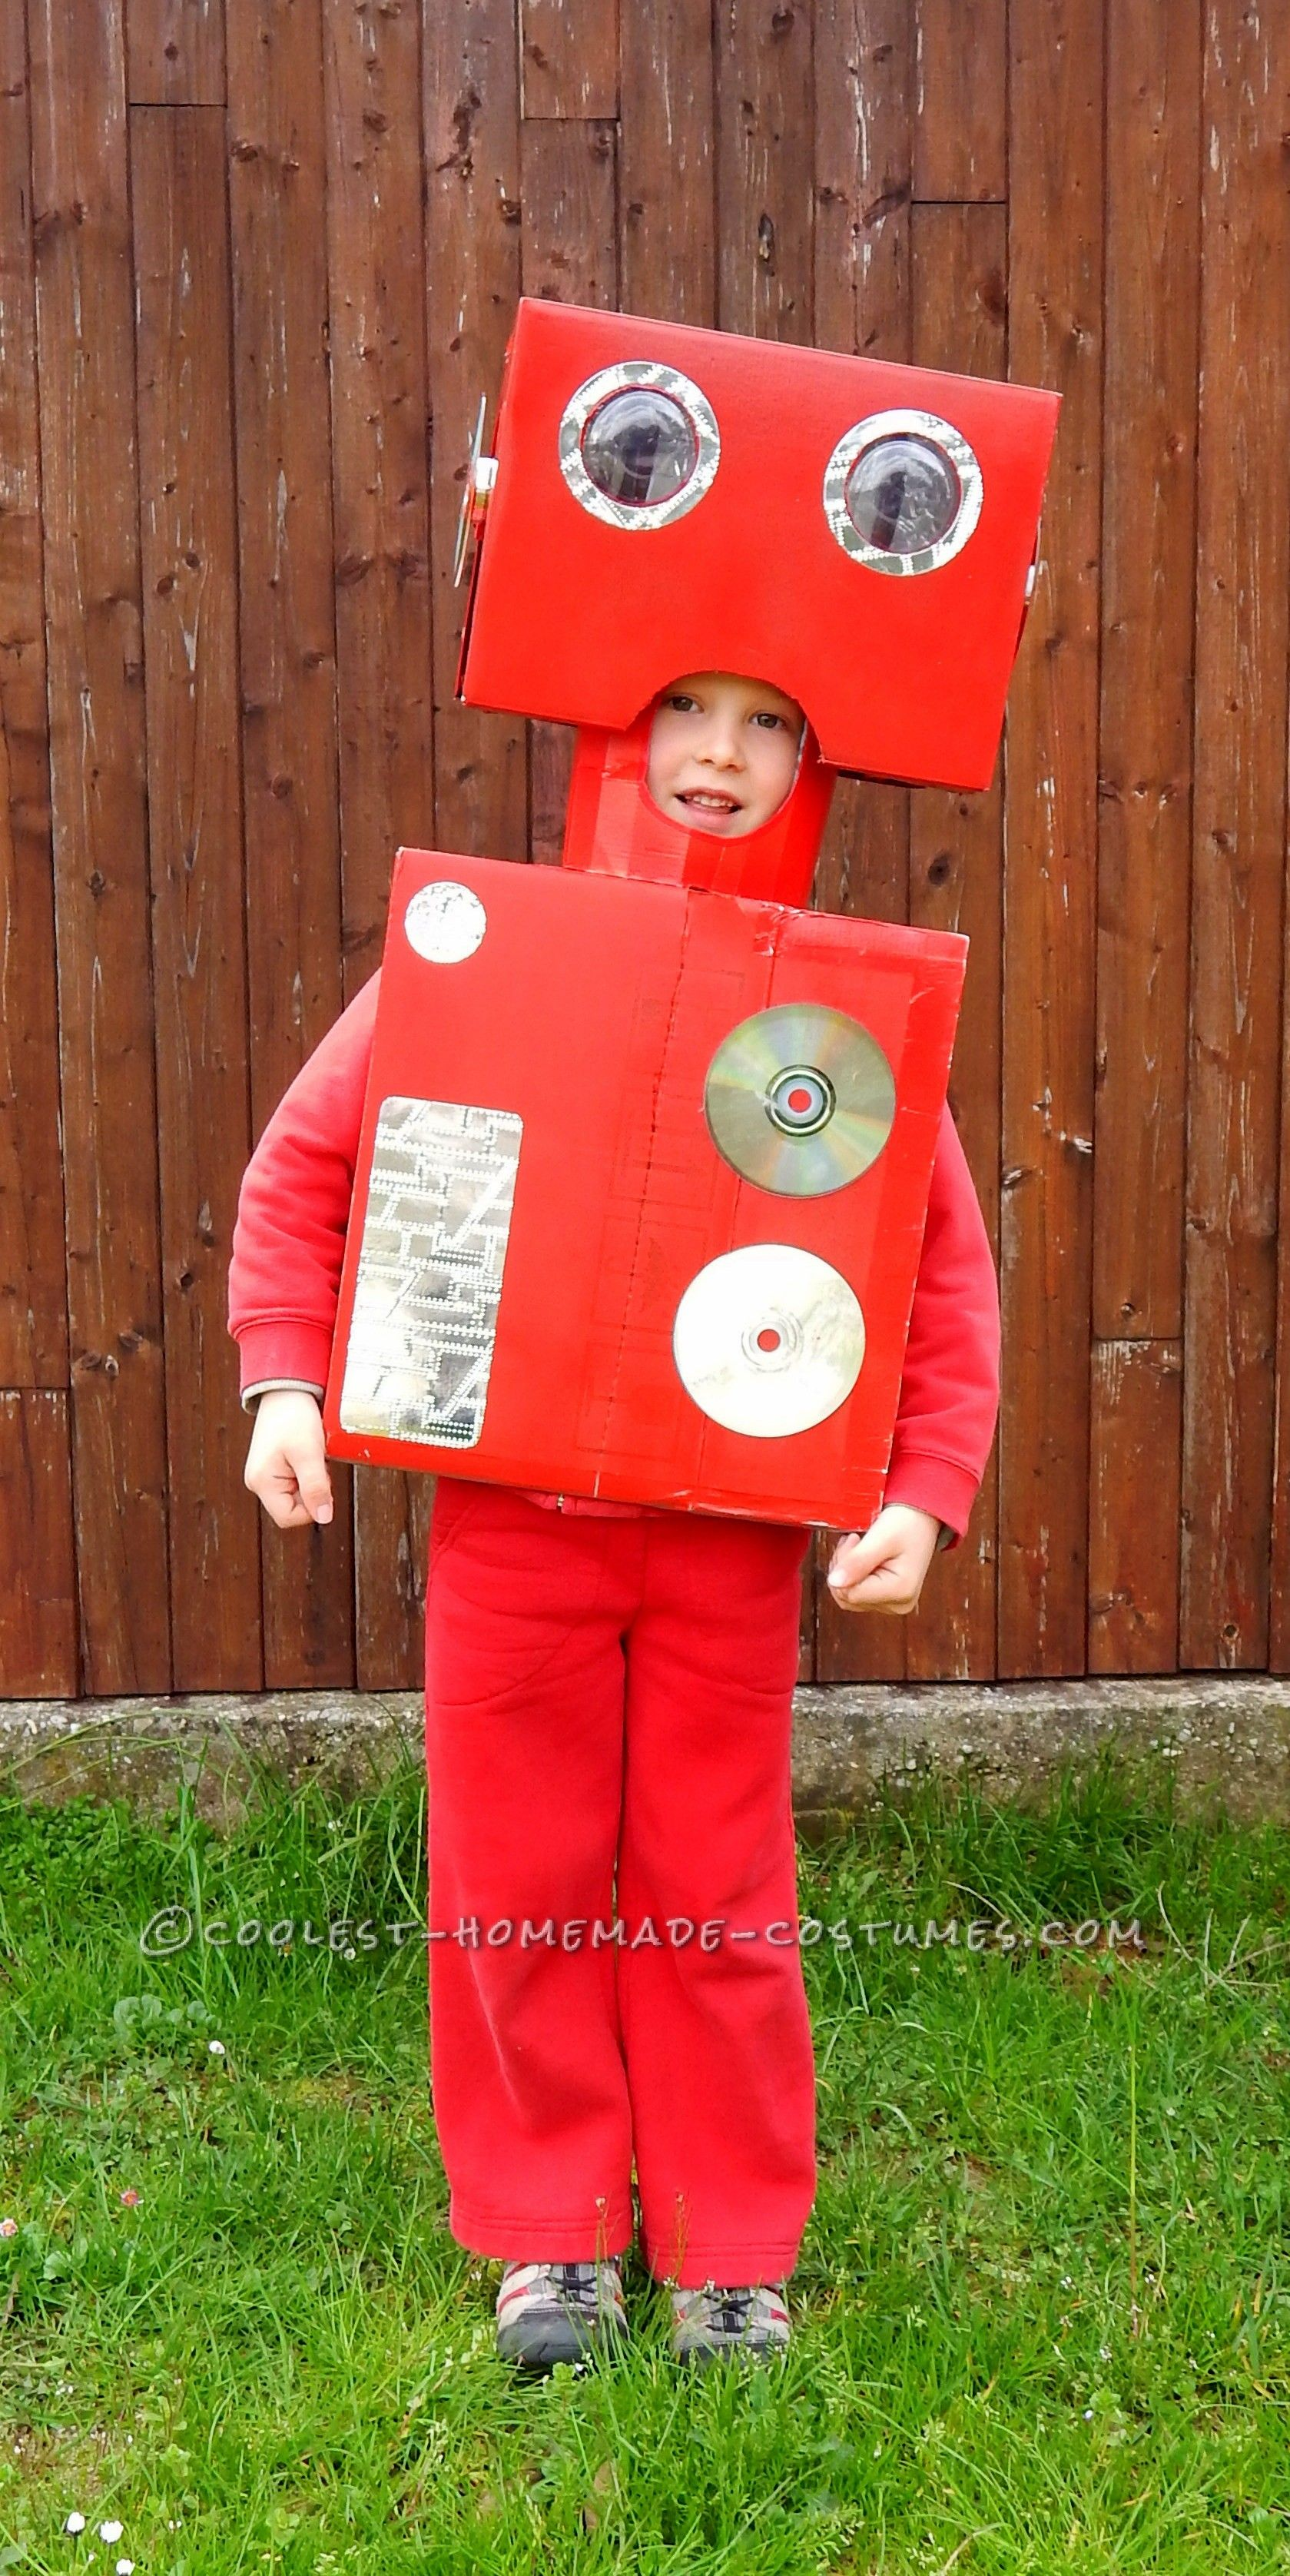 Cool Red Robot Costume Halloween Costume Contest